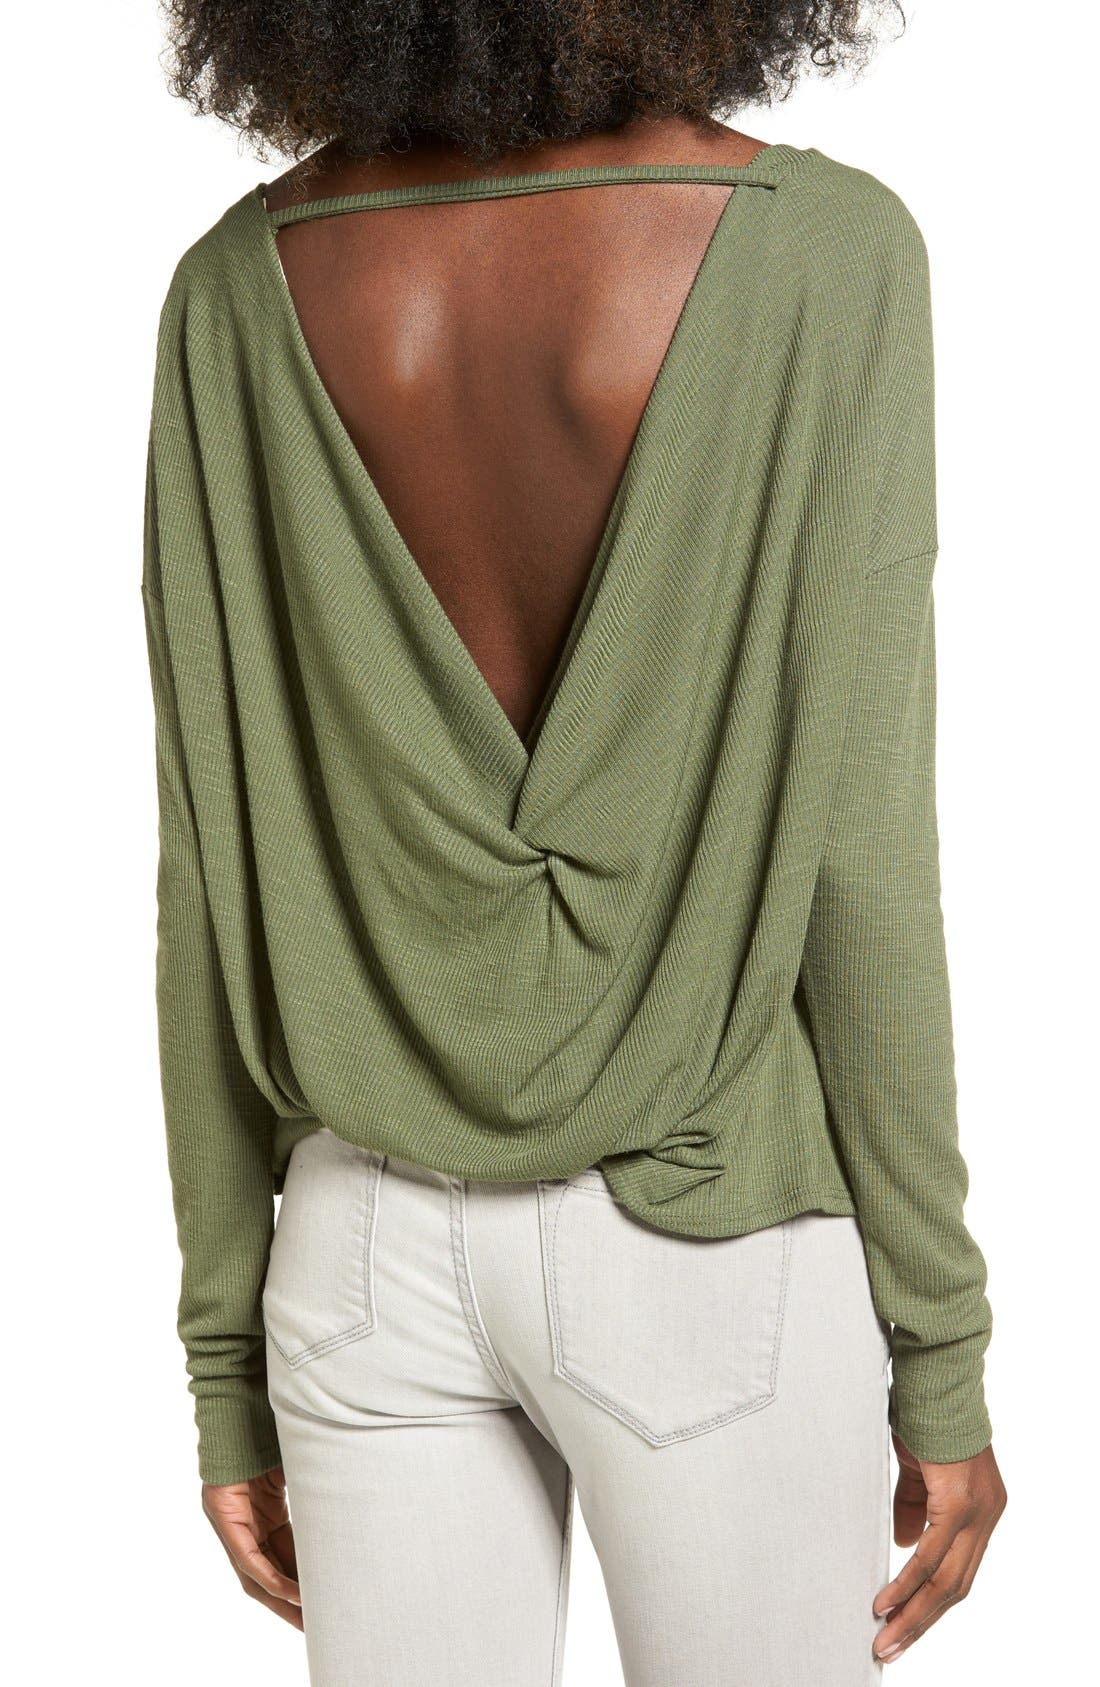 CHLOE & KATIE, Knotted Drape Back Tee, Alternate thumbnail 5, color, 300